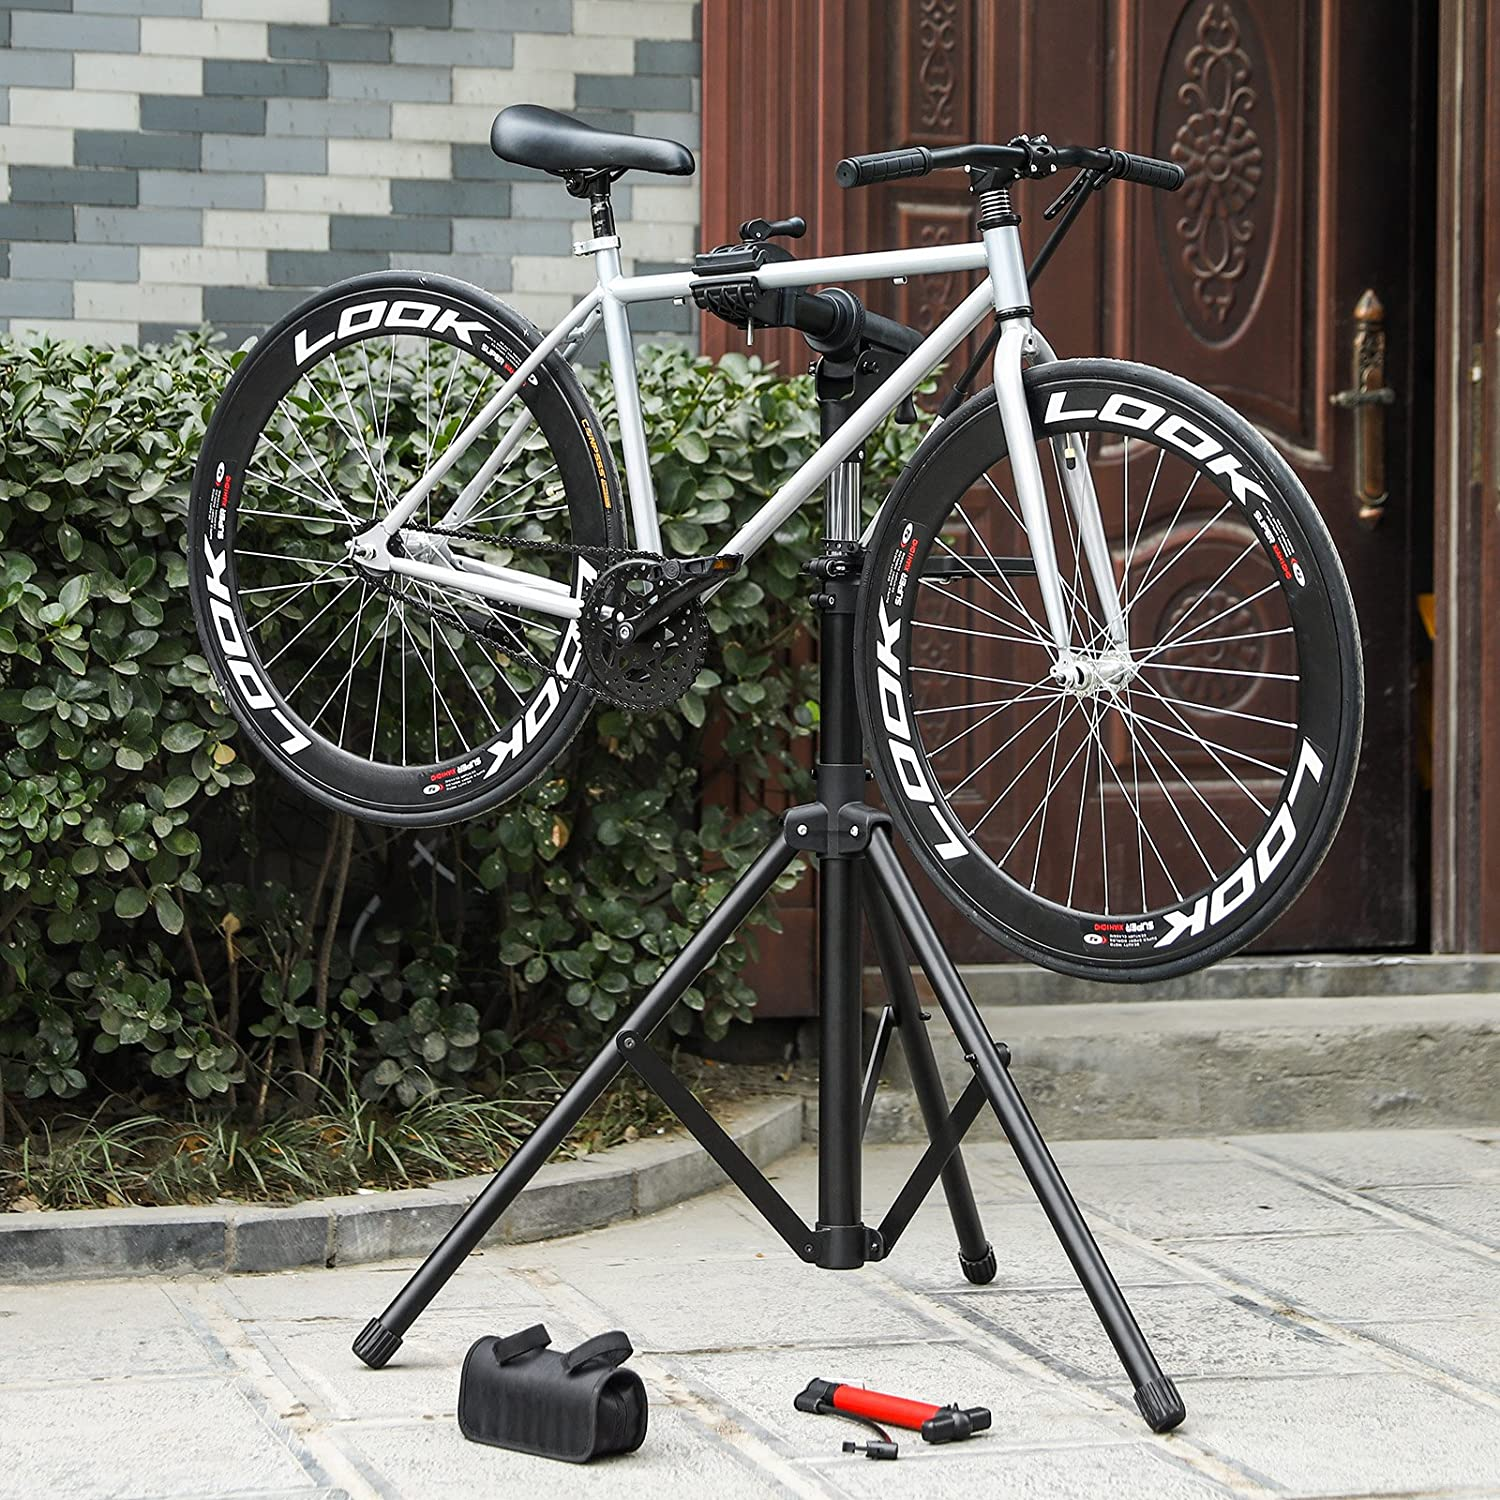 Portable SONGMICS Improved Bike Repair Stand with Aluminum Alloy Arm Large Tool Tray Full Features Stronger Durable Compact SBR03B